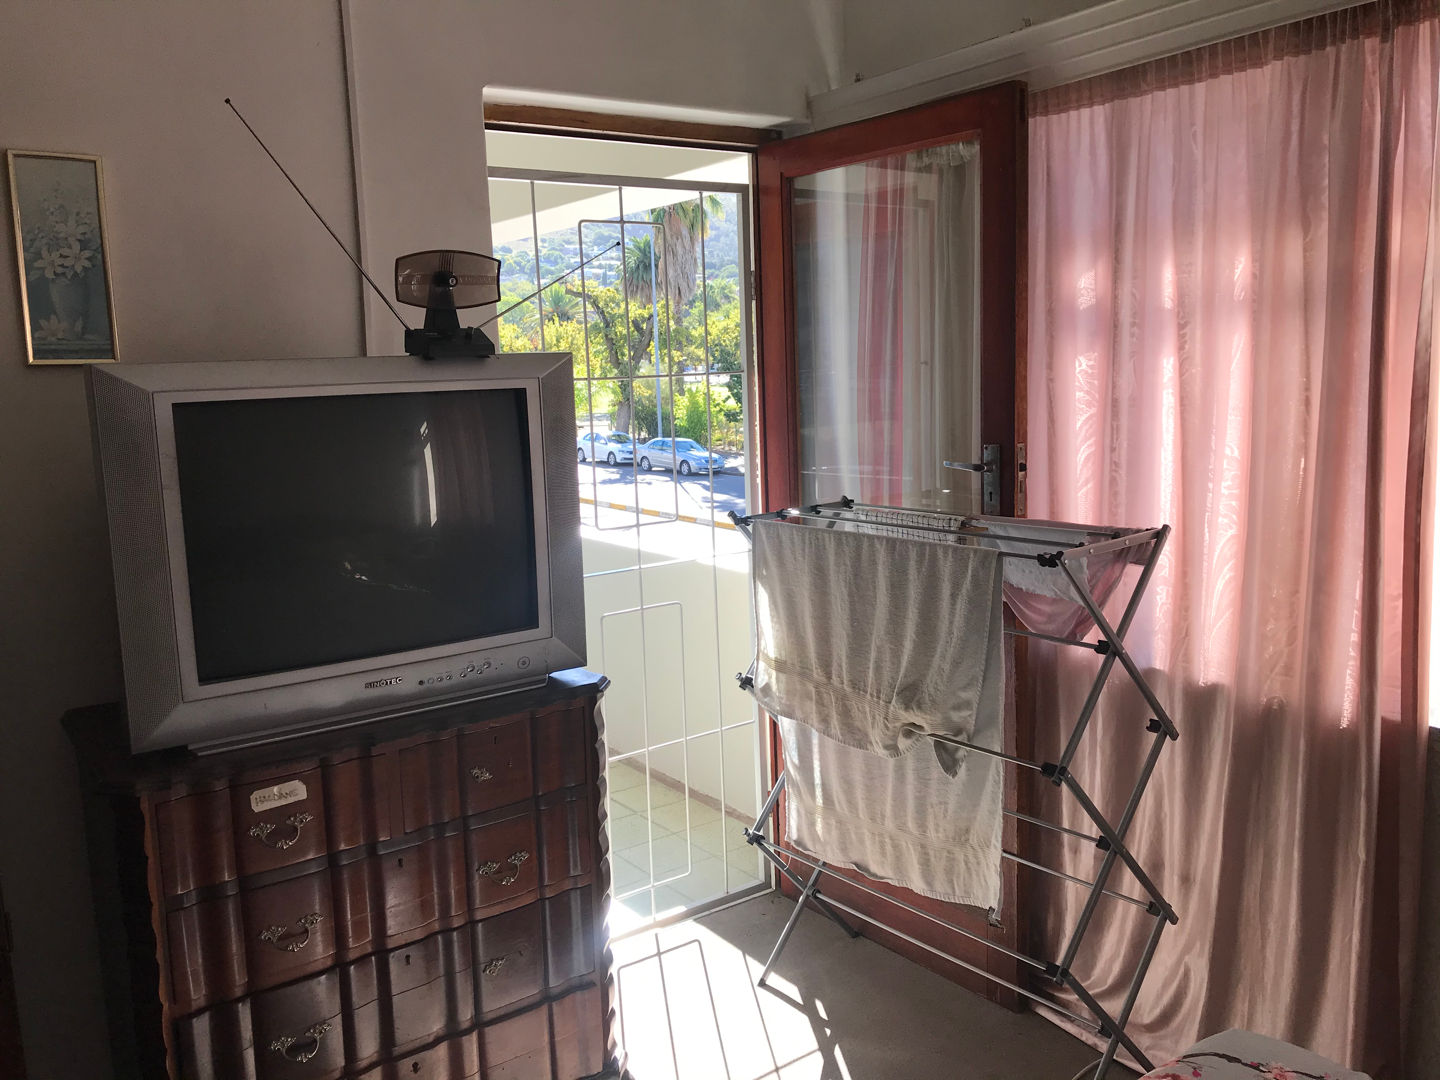 2 Bedroom Apartment / Flat For Sale in Paarl Central West